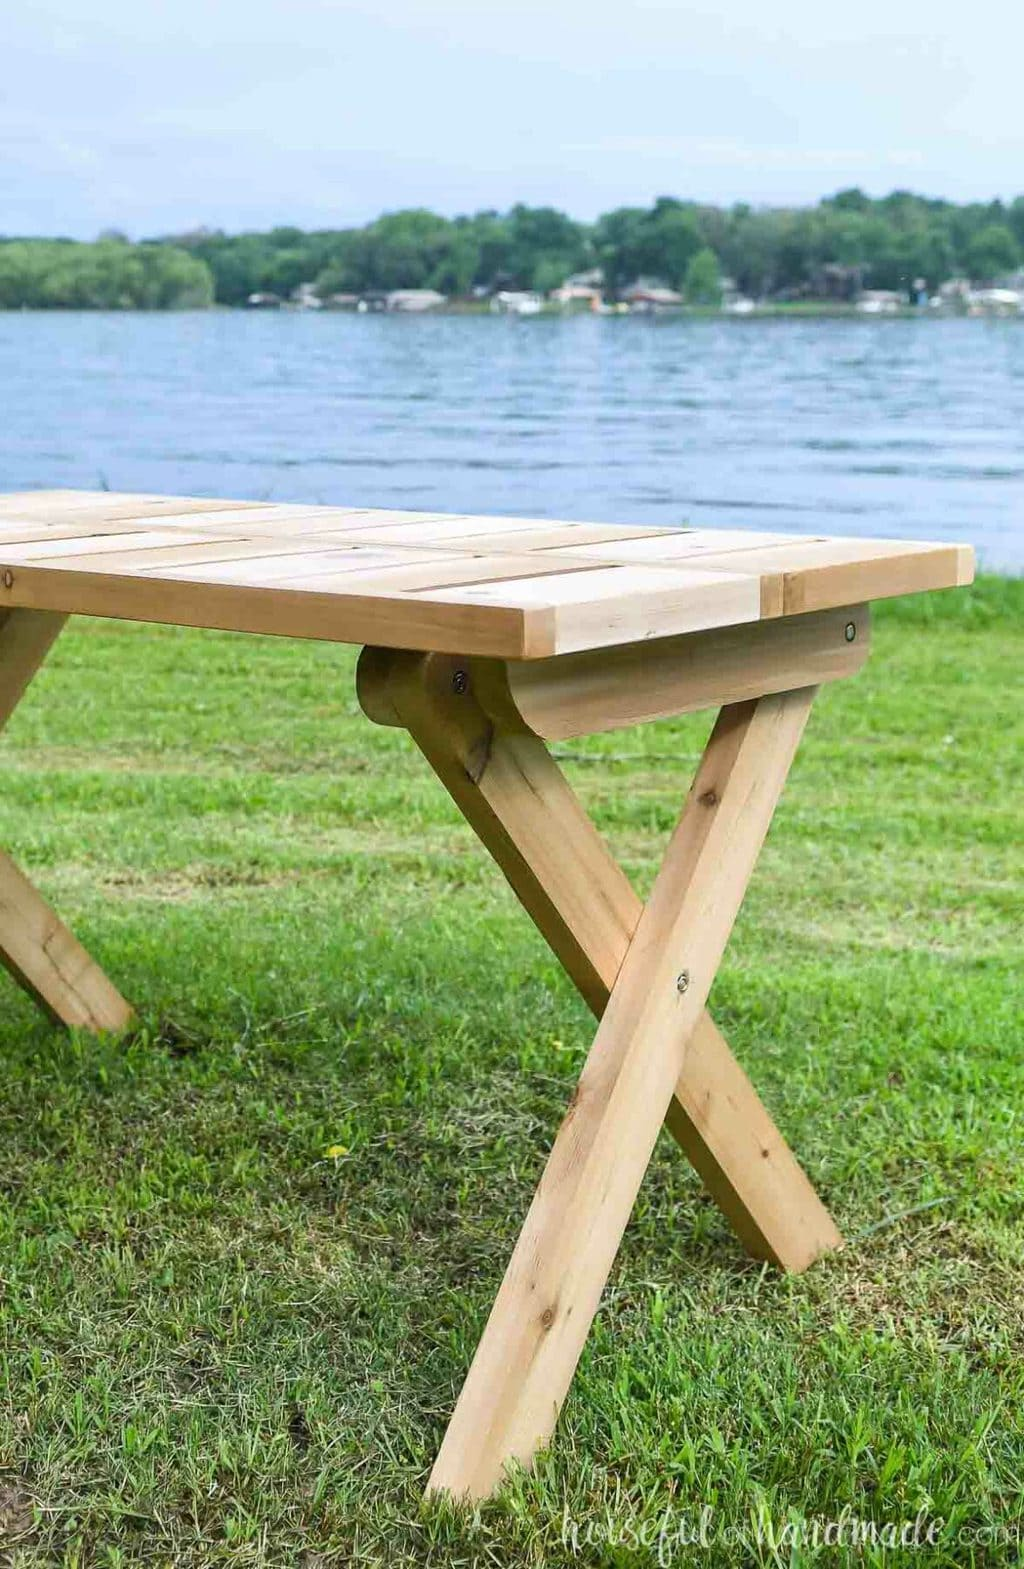 Close up view of the folding picnic table legs.